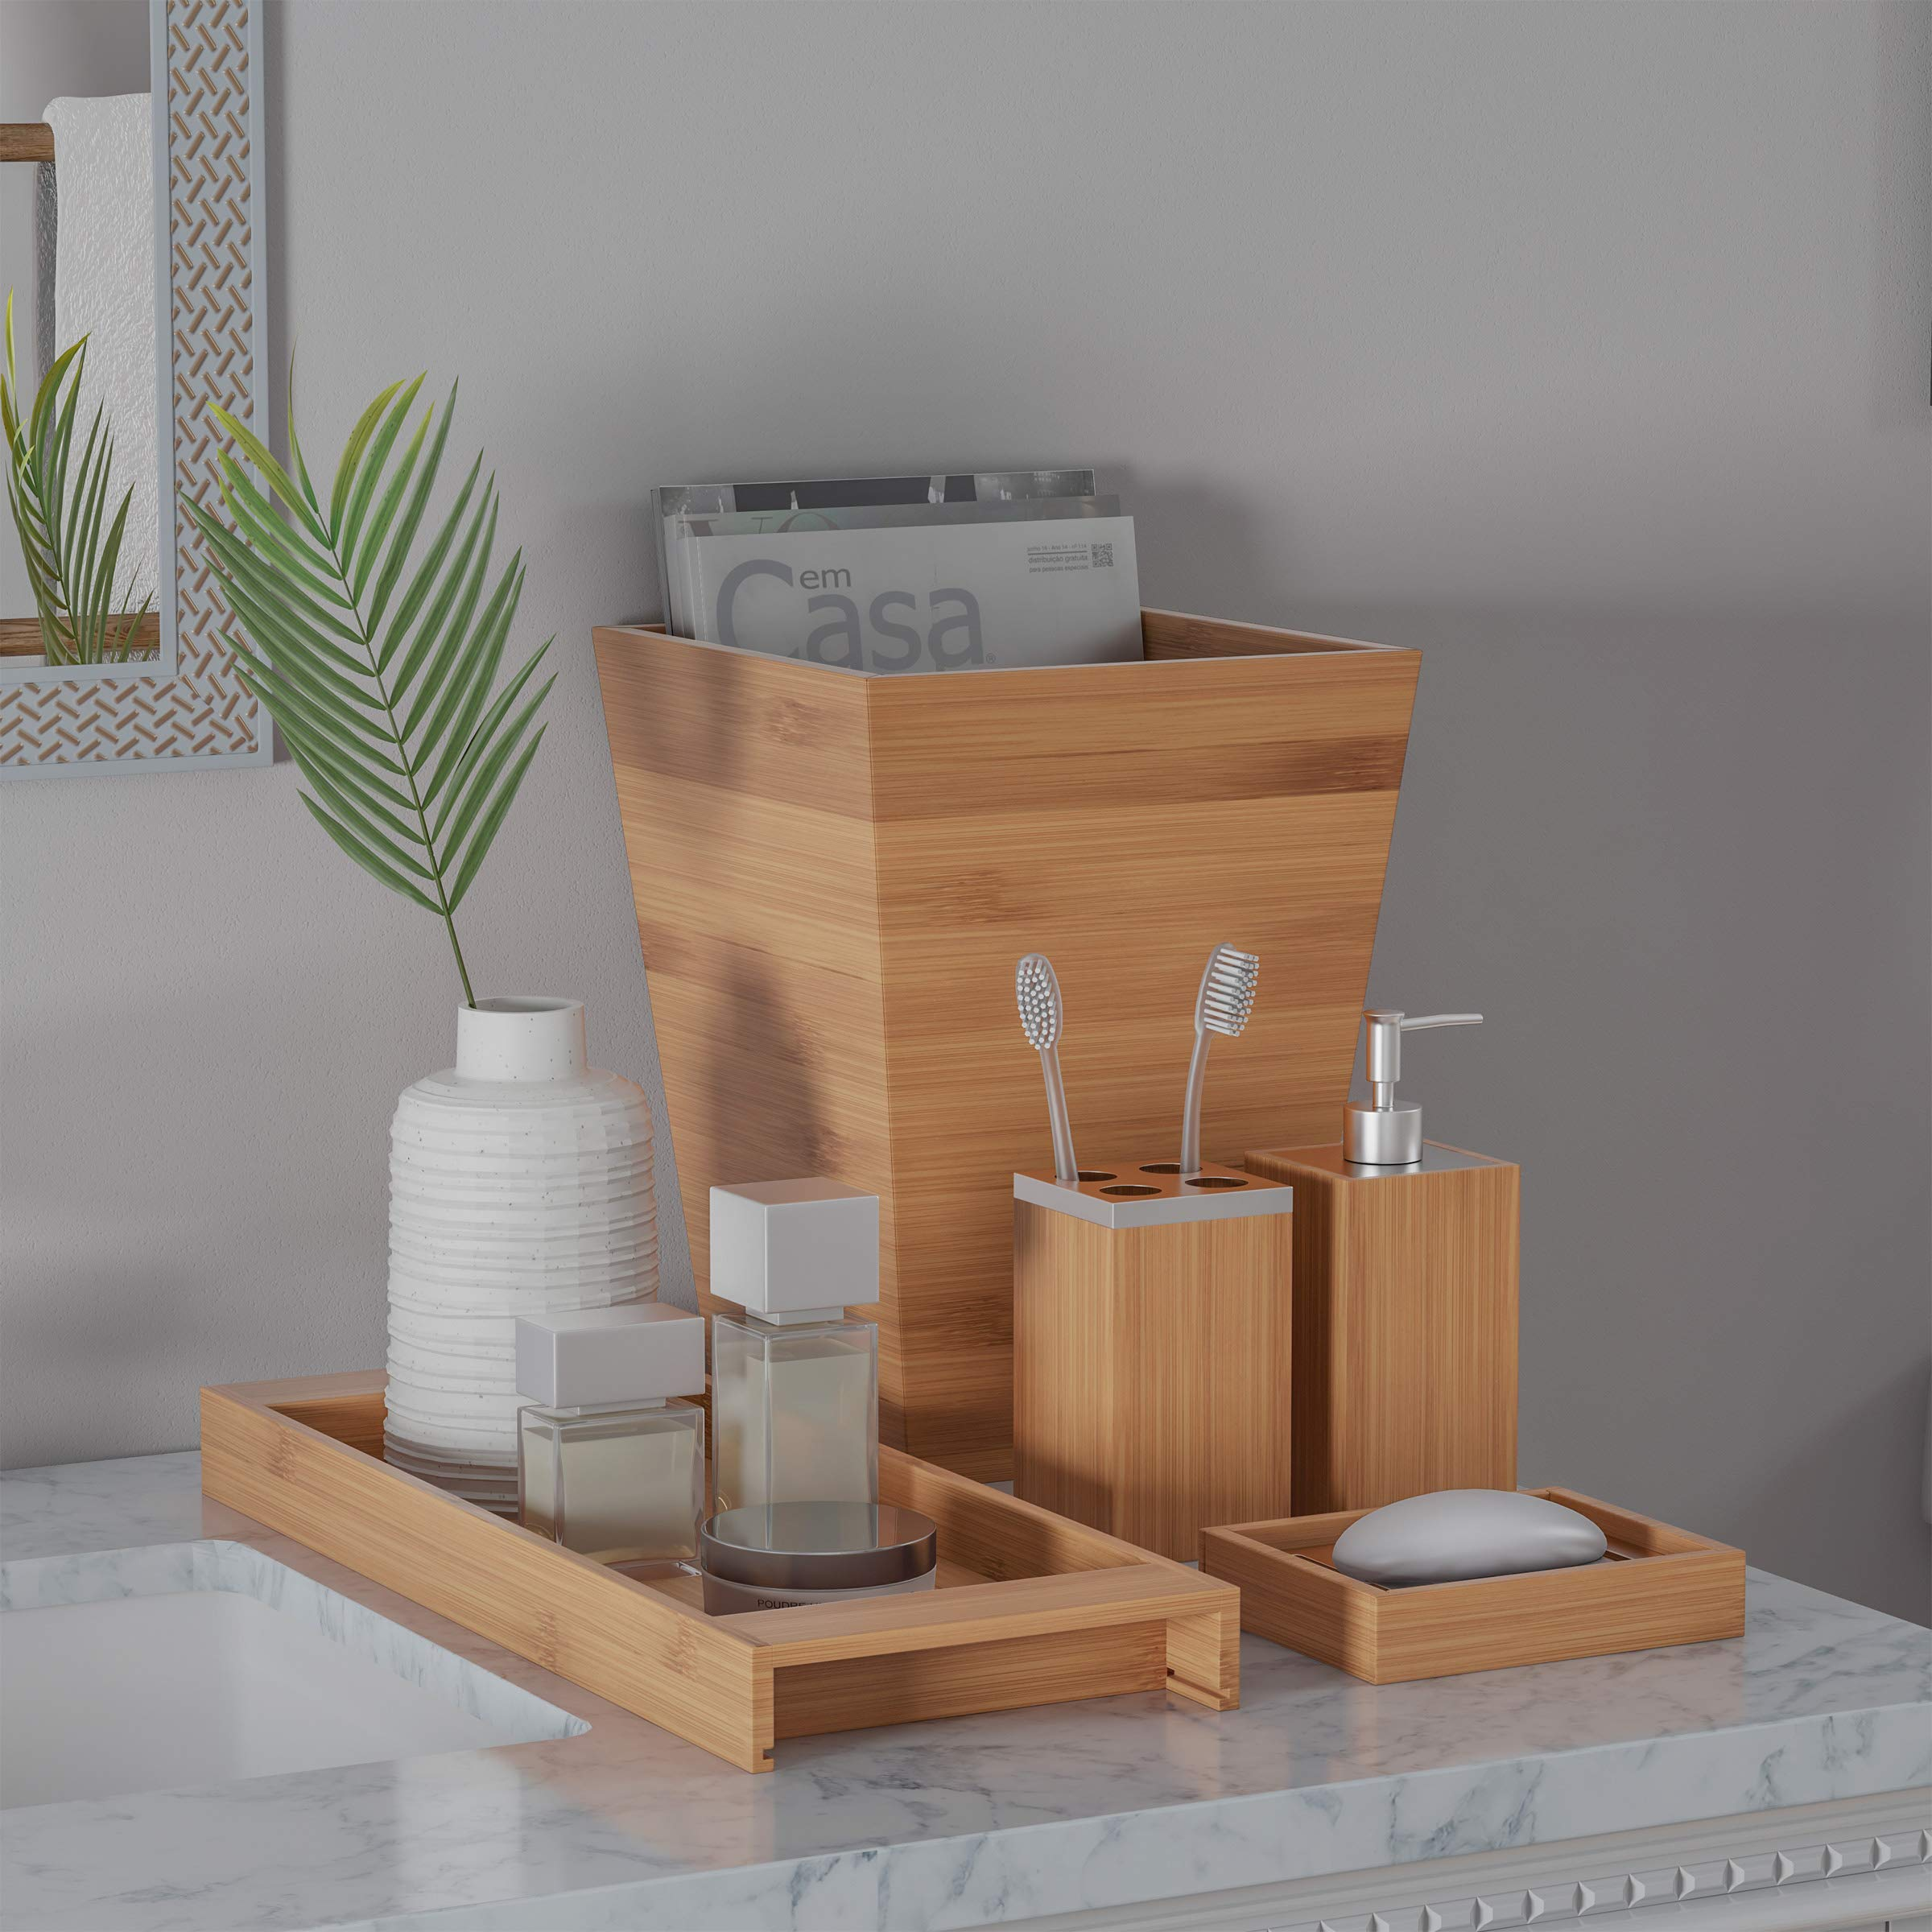 Lavish Home Bamboo Bath Accessories 5 Piece Set Natural Wood Tray Lotion Dispenser Soap Dish Toothbrush Holder Wastebasket Bathroom And Vanity